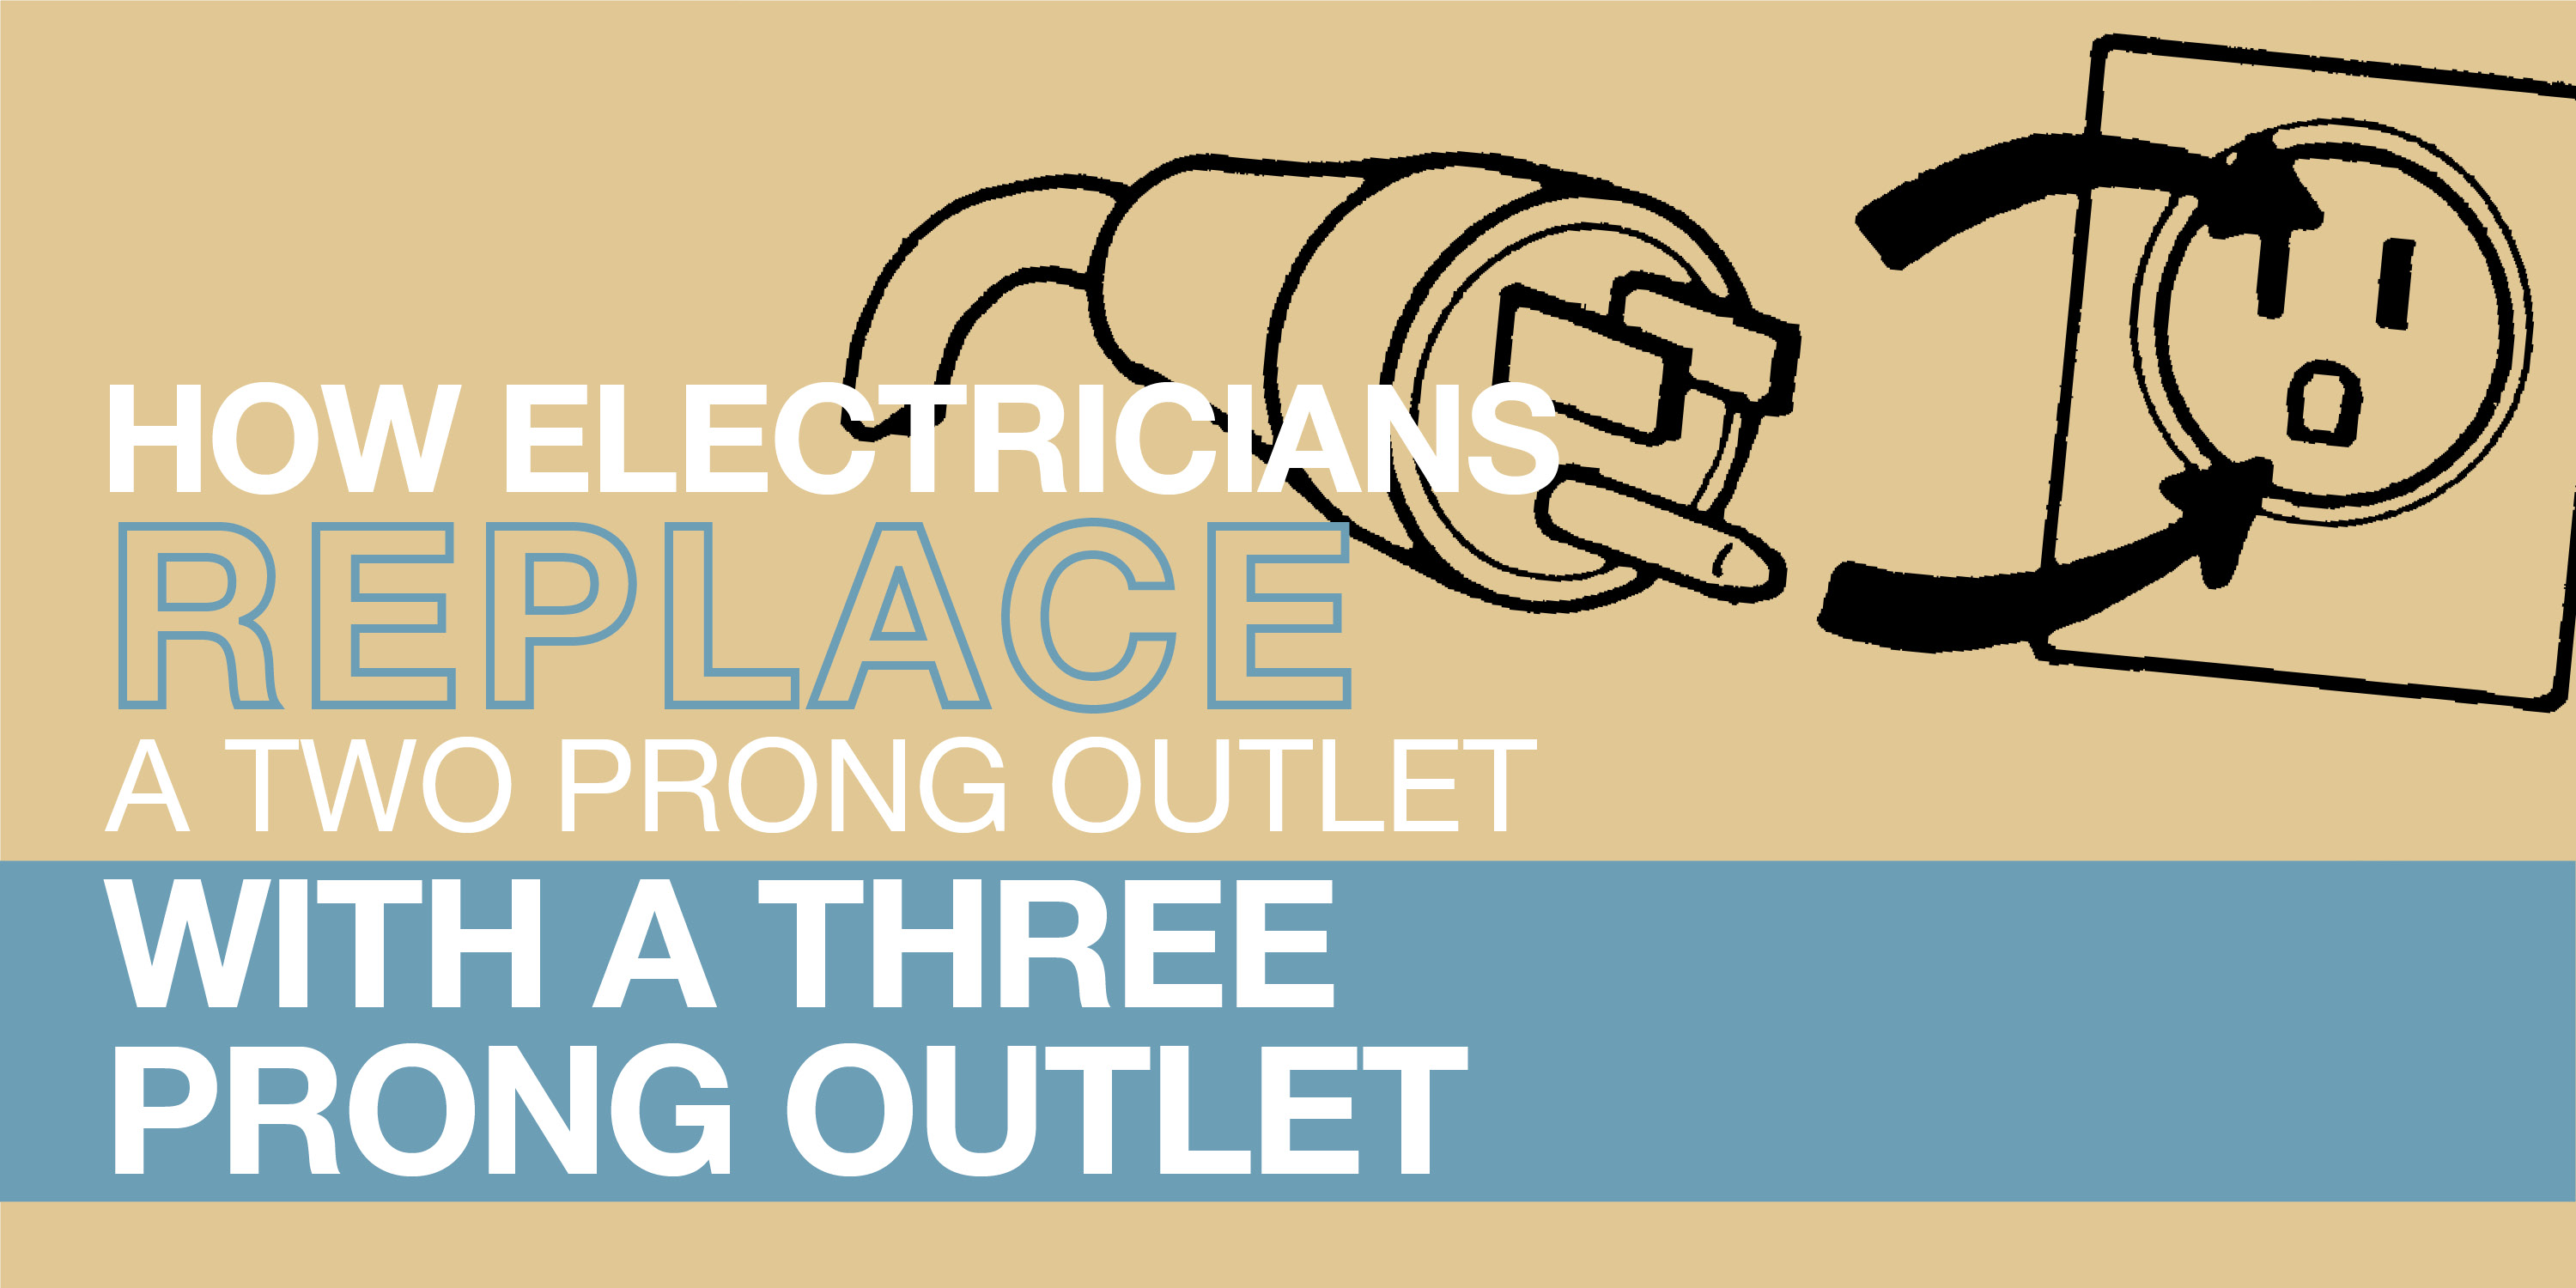 How Electricians Replace a Two Prong Outlet with a Three Prong Outlet